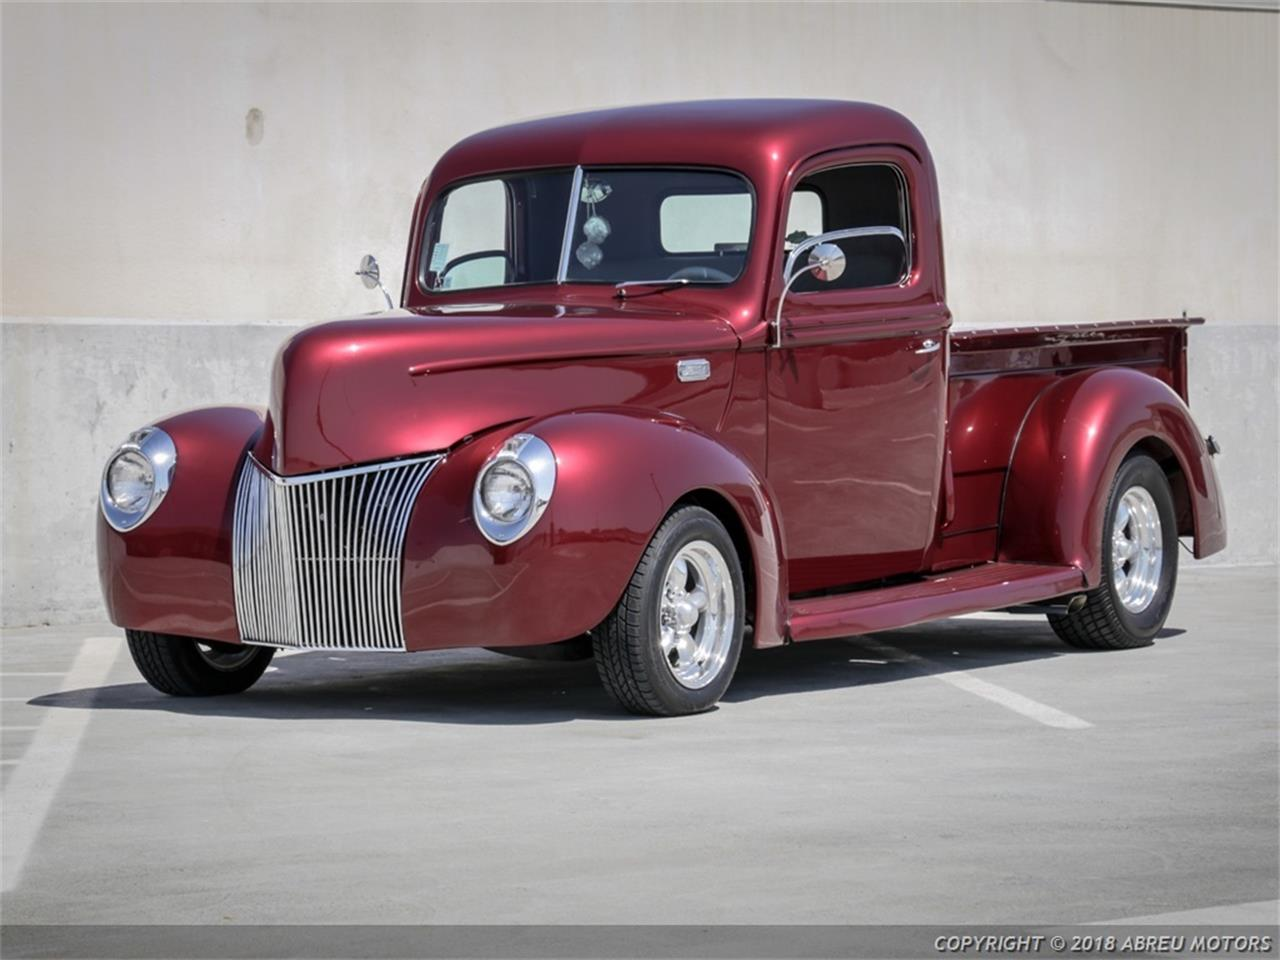 For Sale: 1941 Ford Pickup in Carmel, Indiana